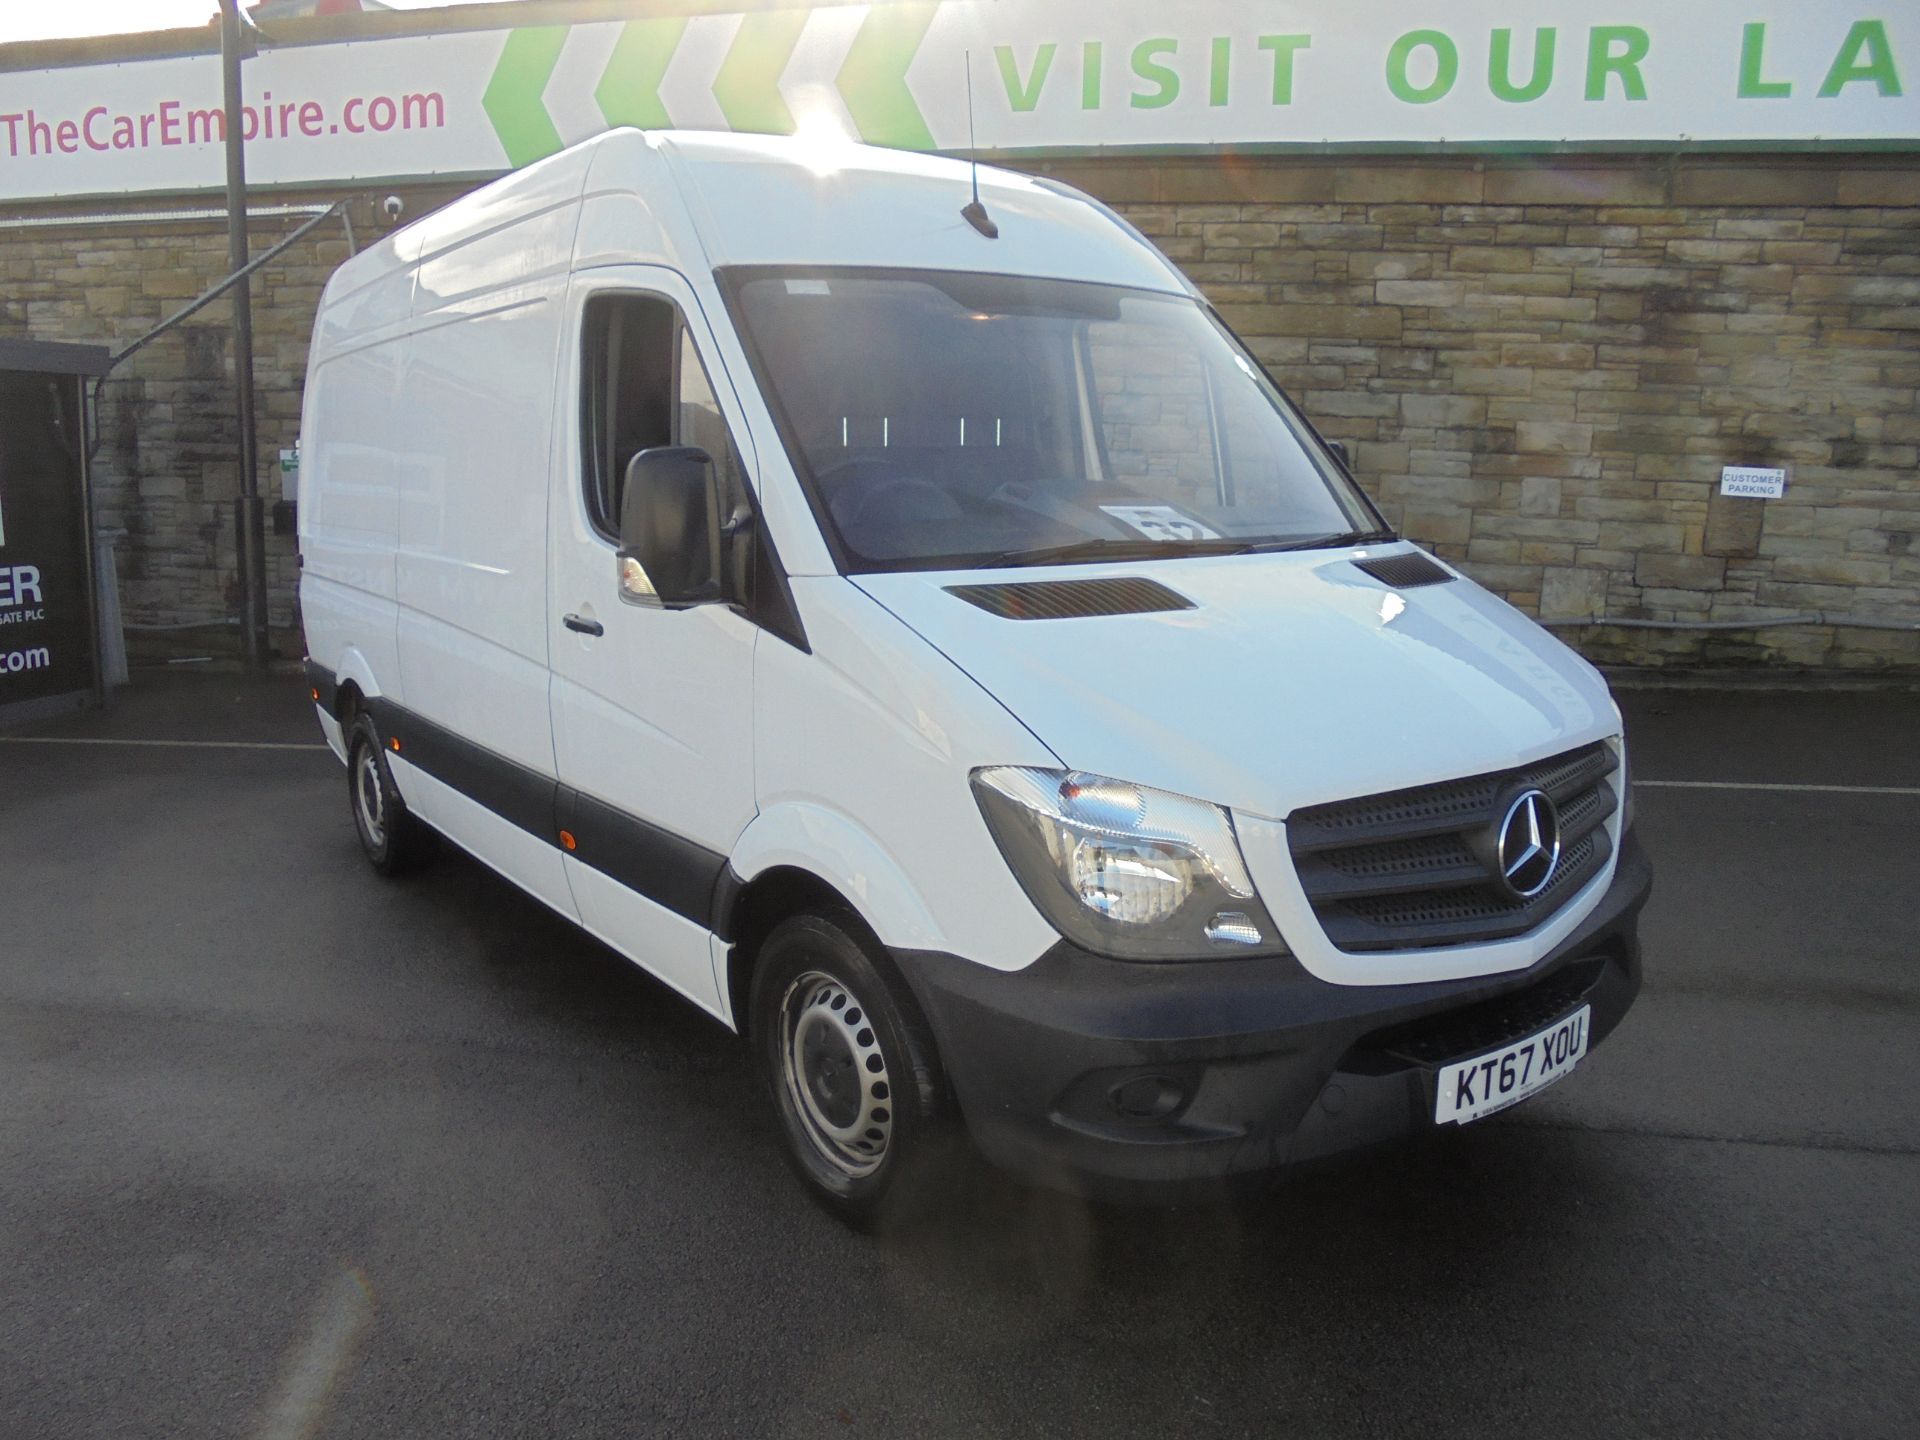 2018 Mercedes-Benz Sprinter 3.5T High Roof Van (KT67XOU)